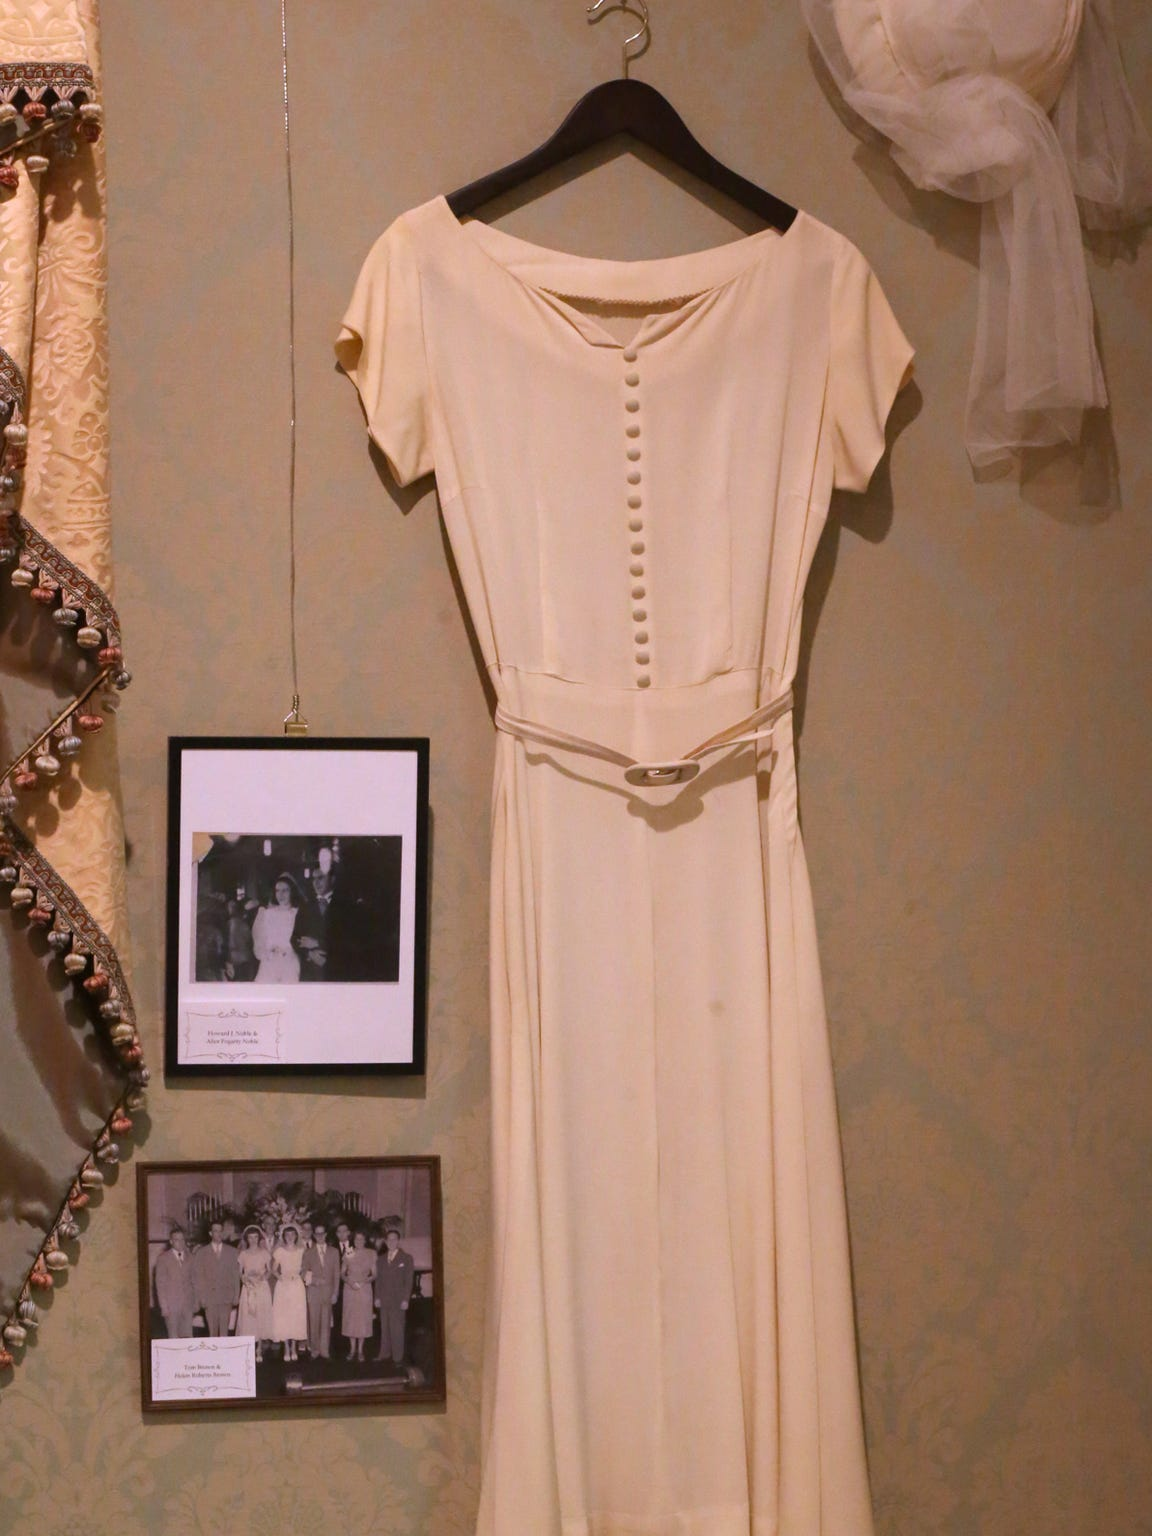 The wedding dress of the late Helen Roberts Brown is